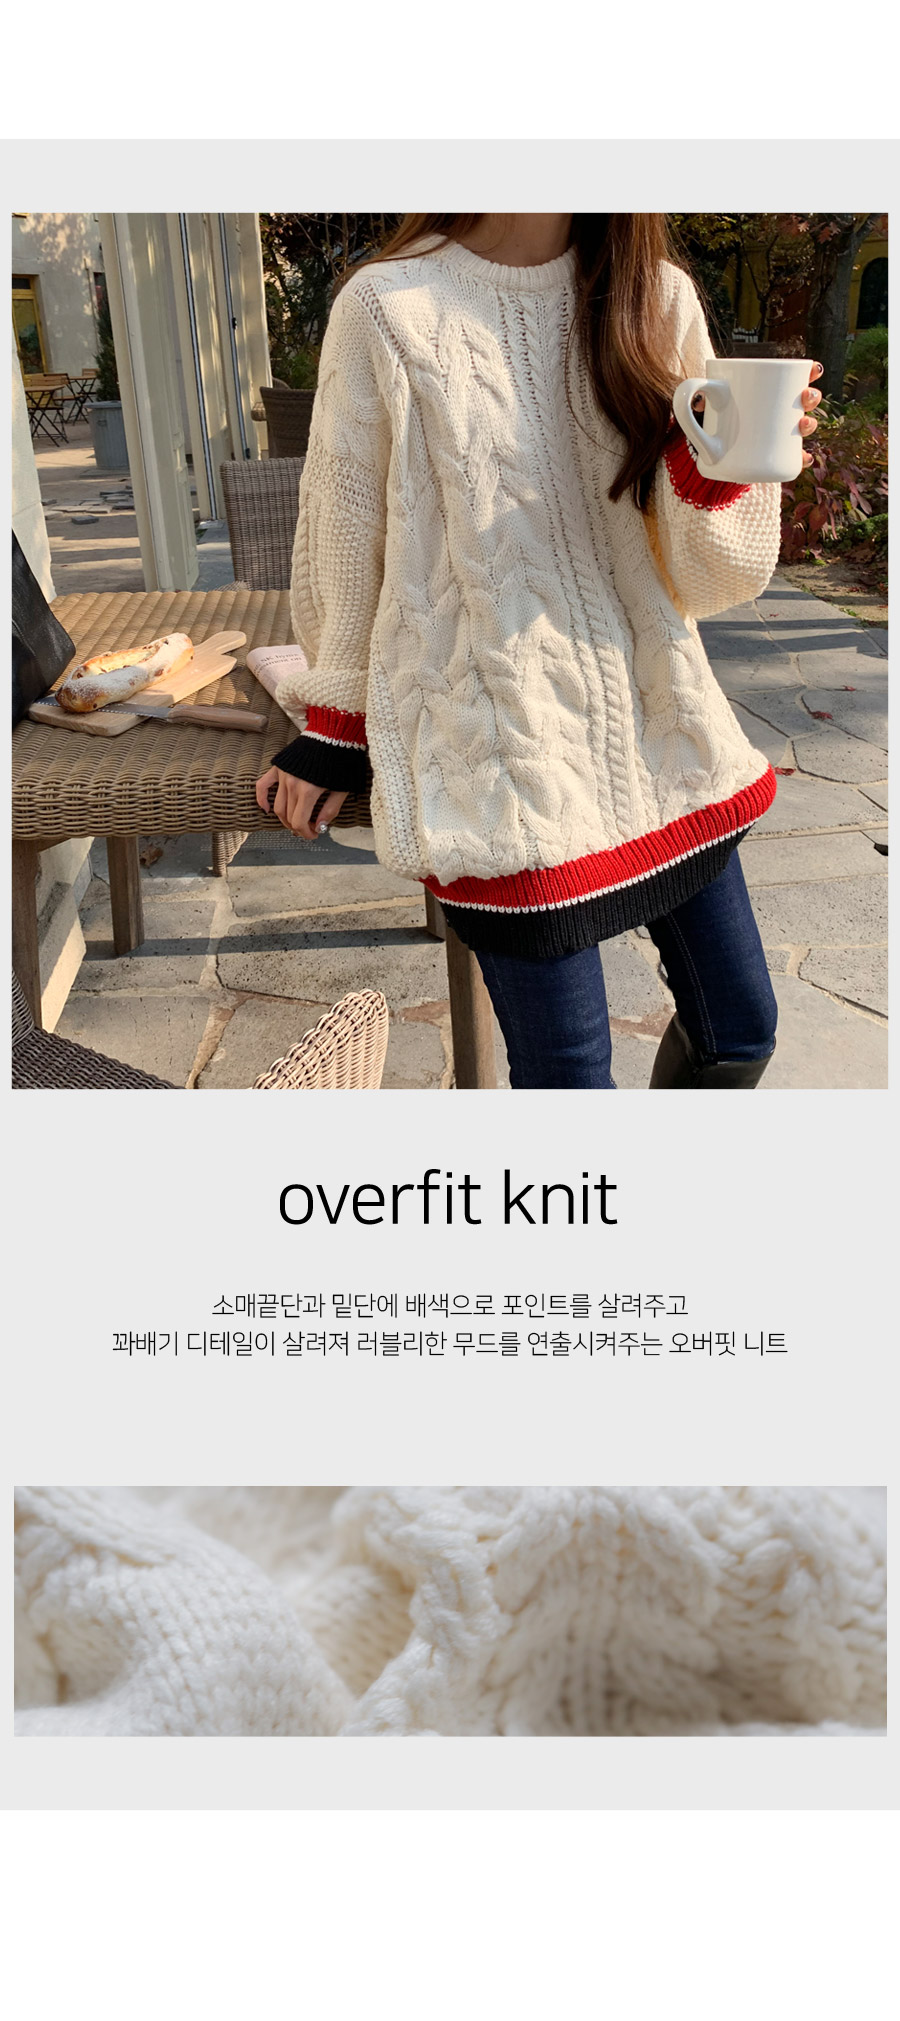 Beer cable scheme overfit knit